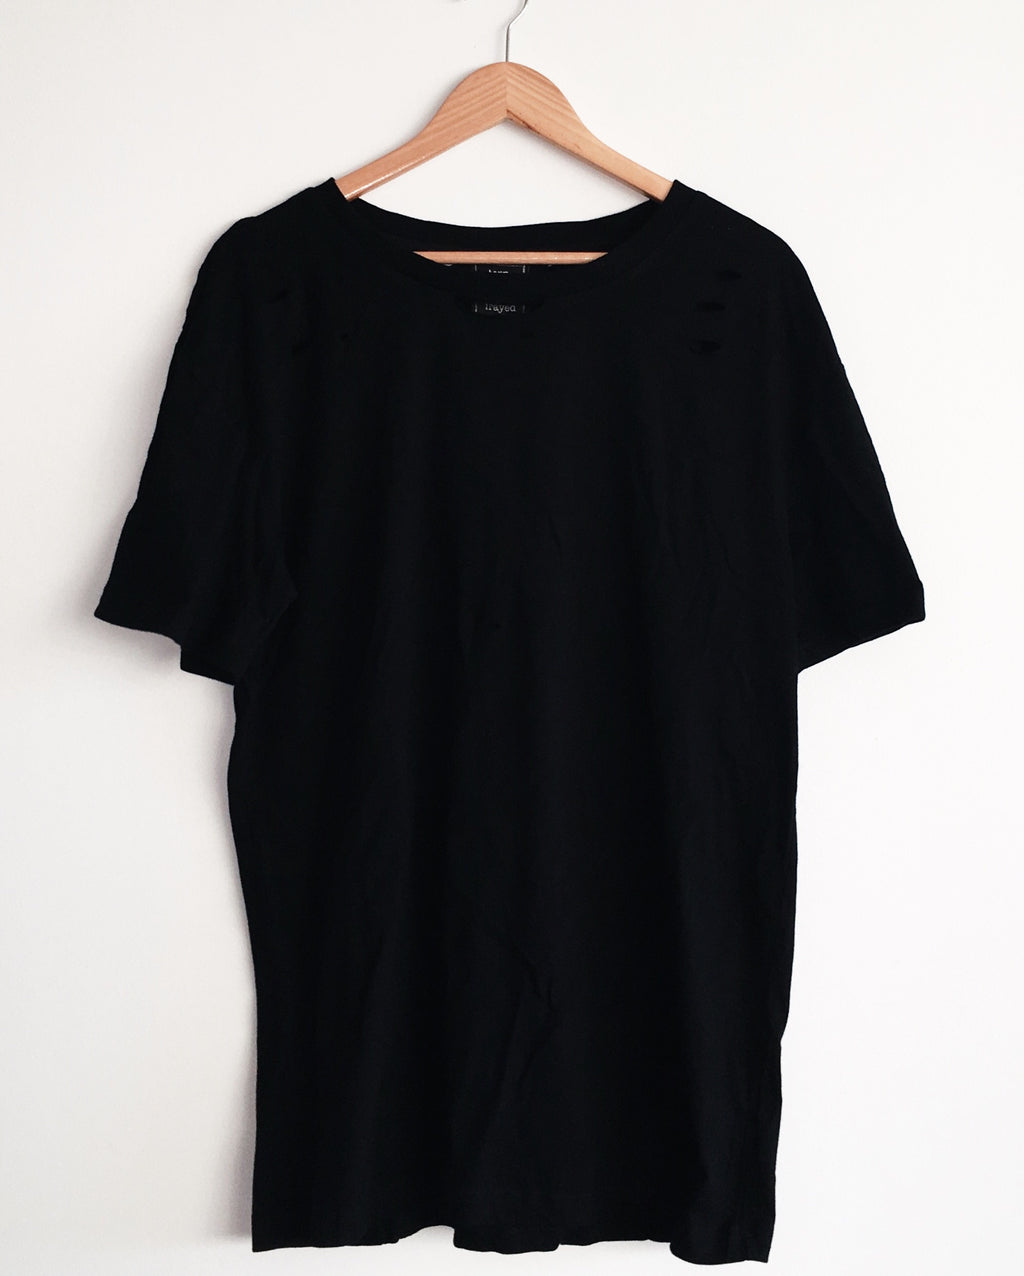 Vintage Tee - Washed Black